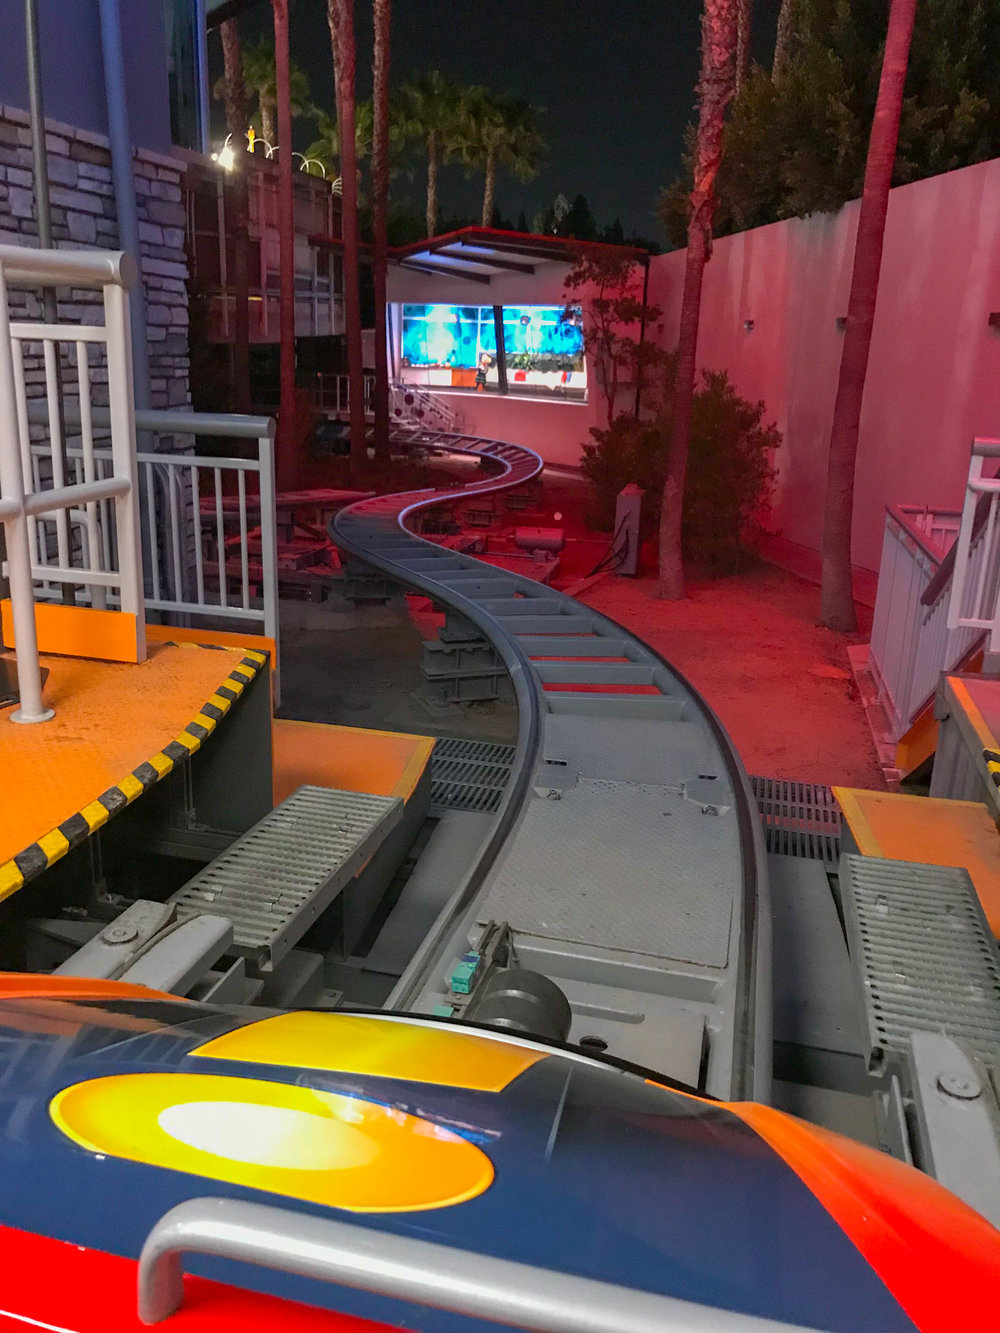 Incredicoaster Front Row - After